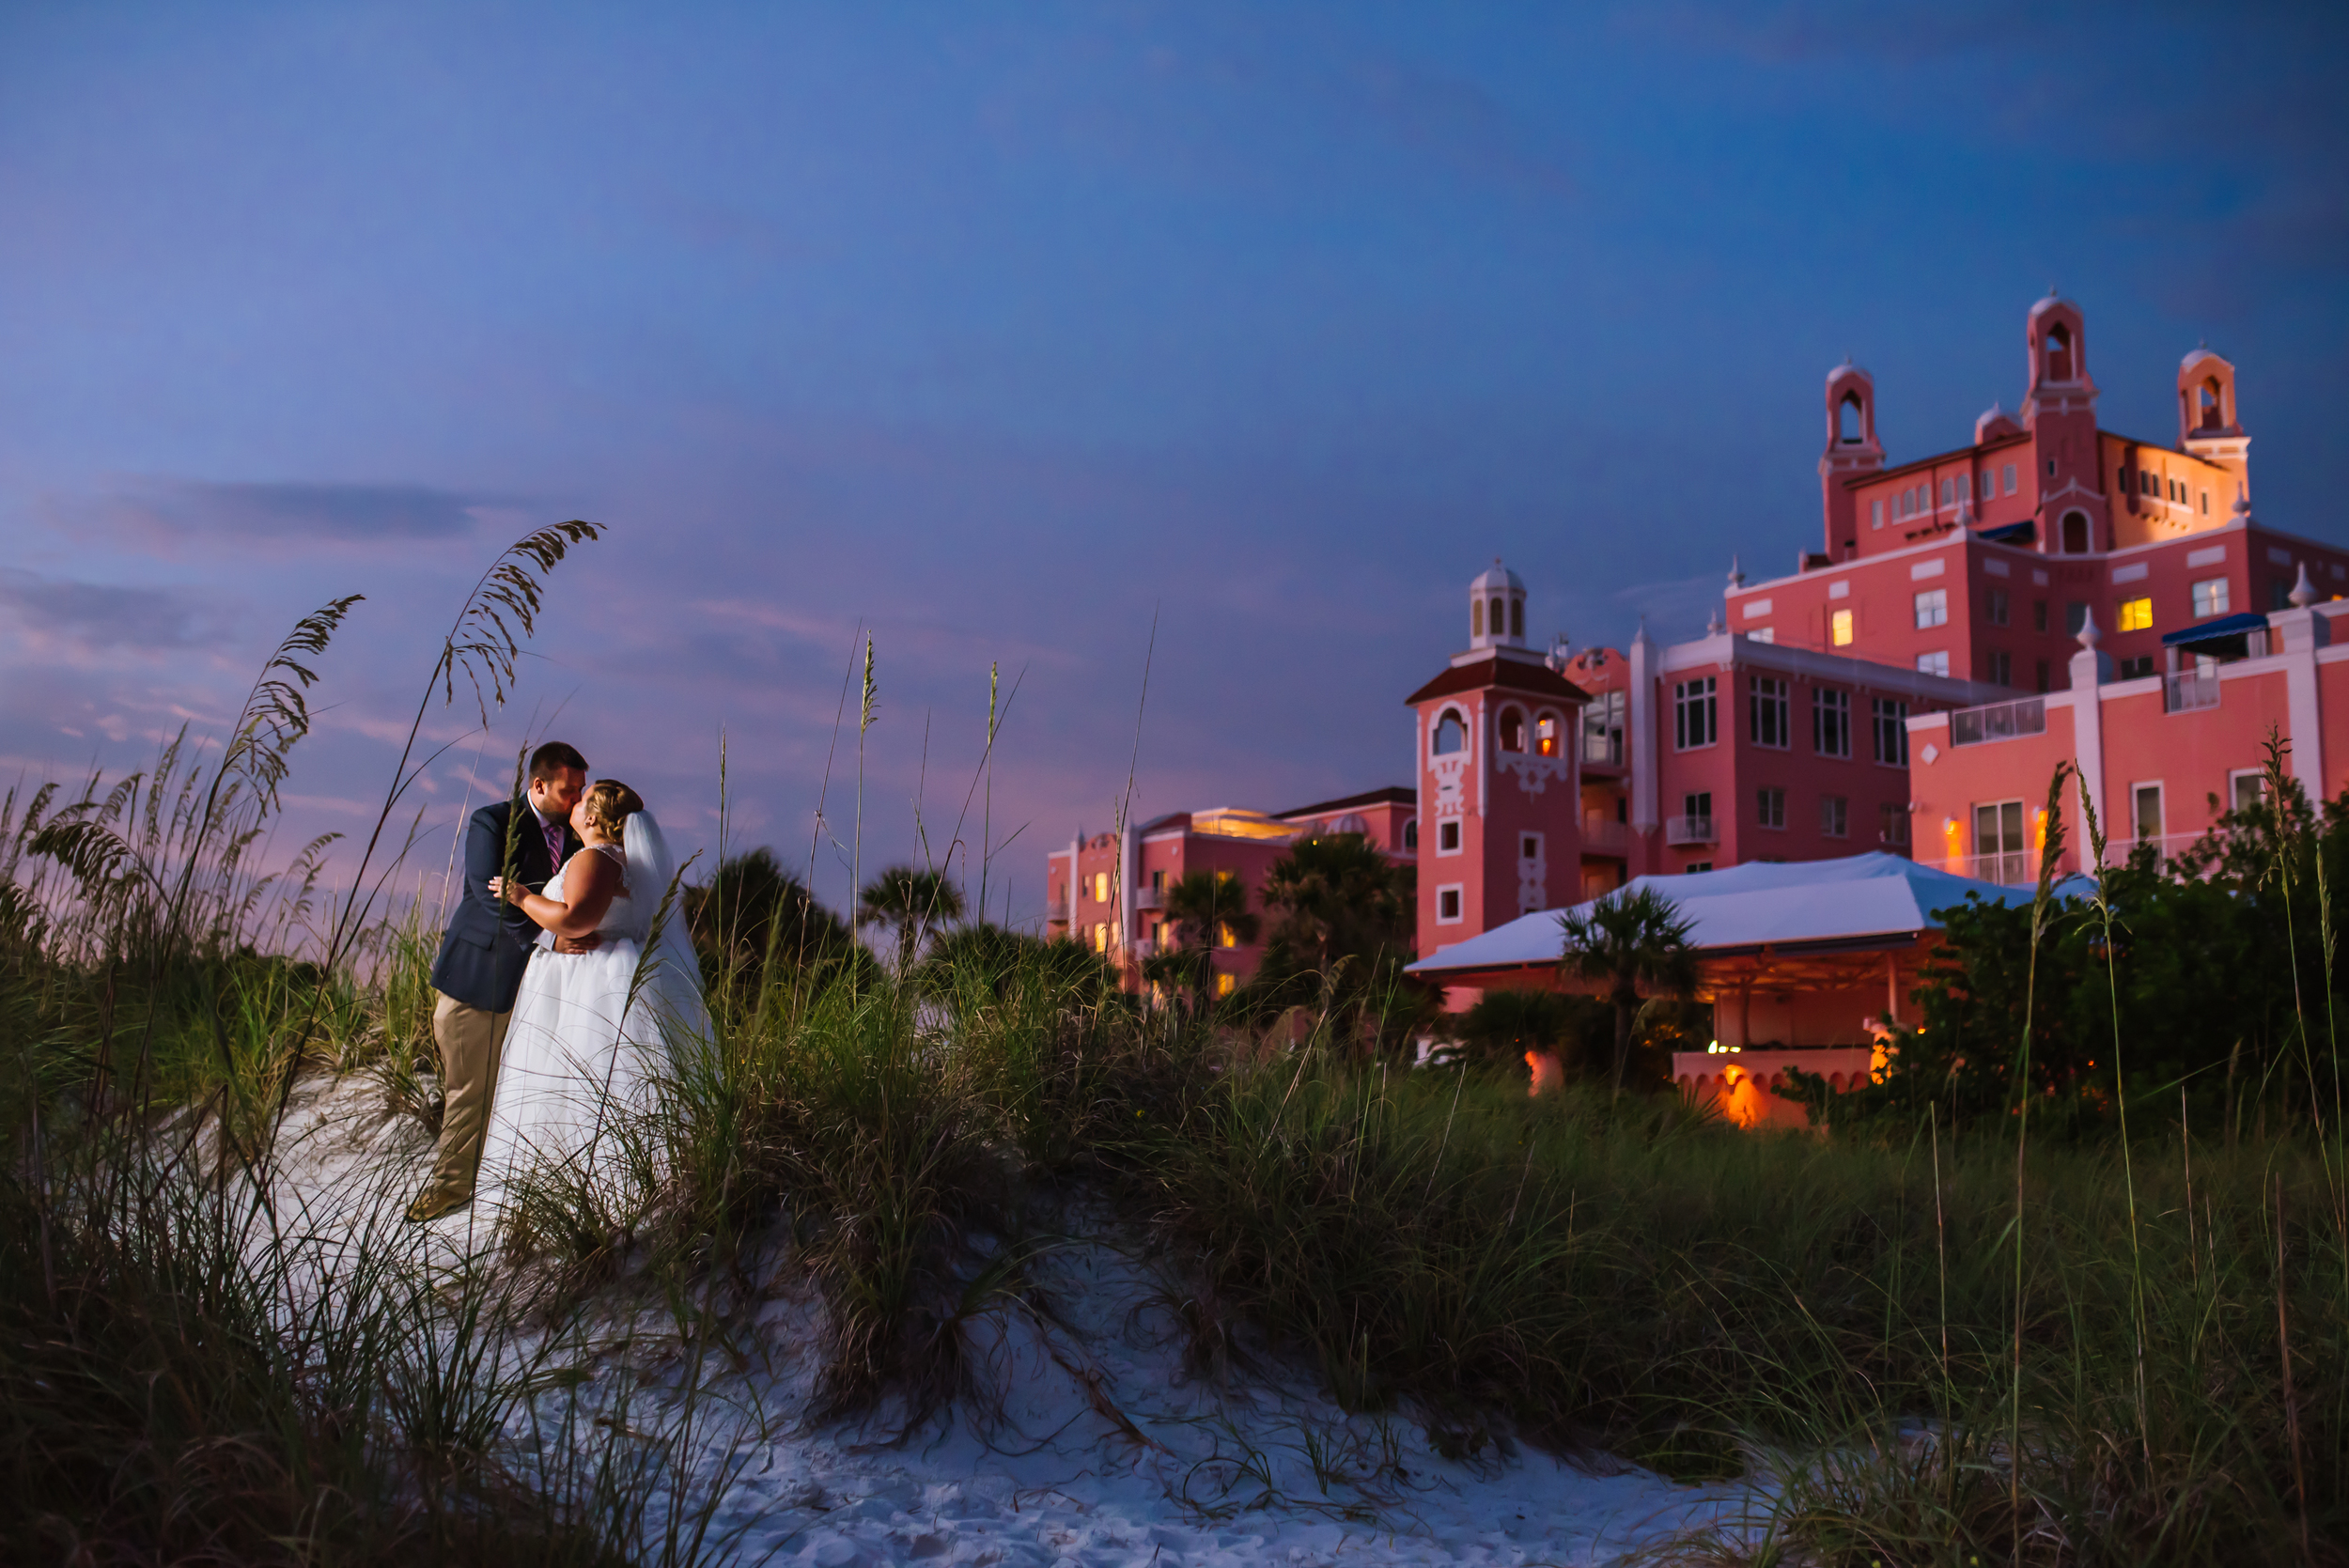 Katie and Jason had a perfectly pink sunset to go with their gorgeous venue and decor! Her awesome maid of honor is actually the sister of my next bride Birtney too! And I will never forget our fun day at Disney World for their engagement session!